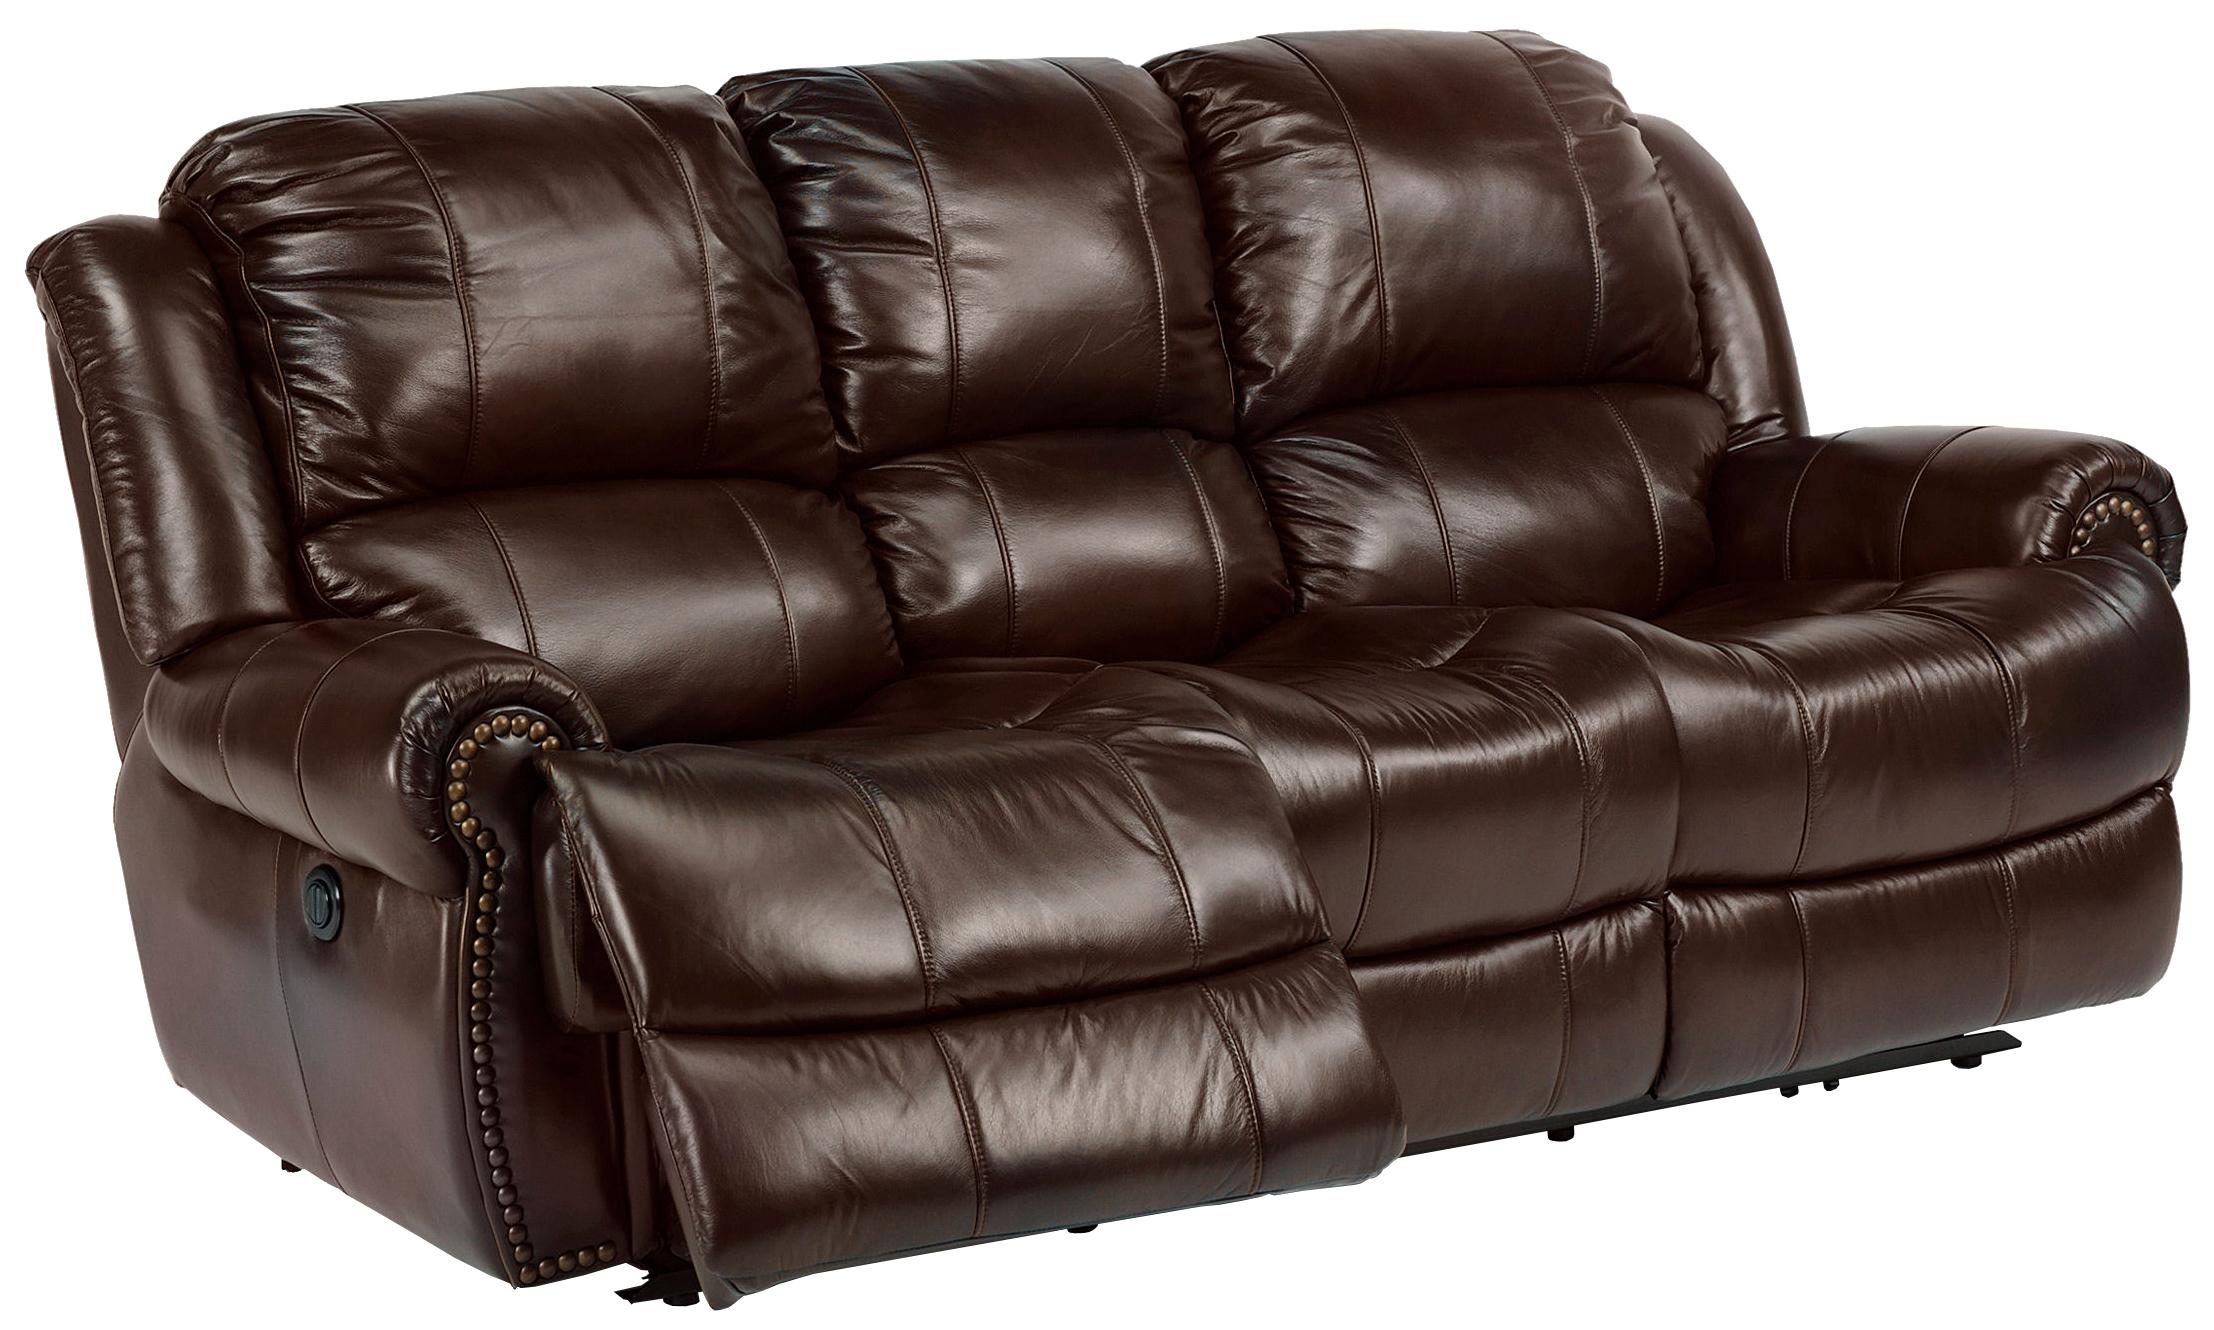 Power Reclining Sofa : Flexsteel latitudes capitol power reclining sofa with